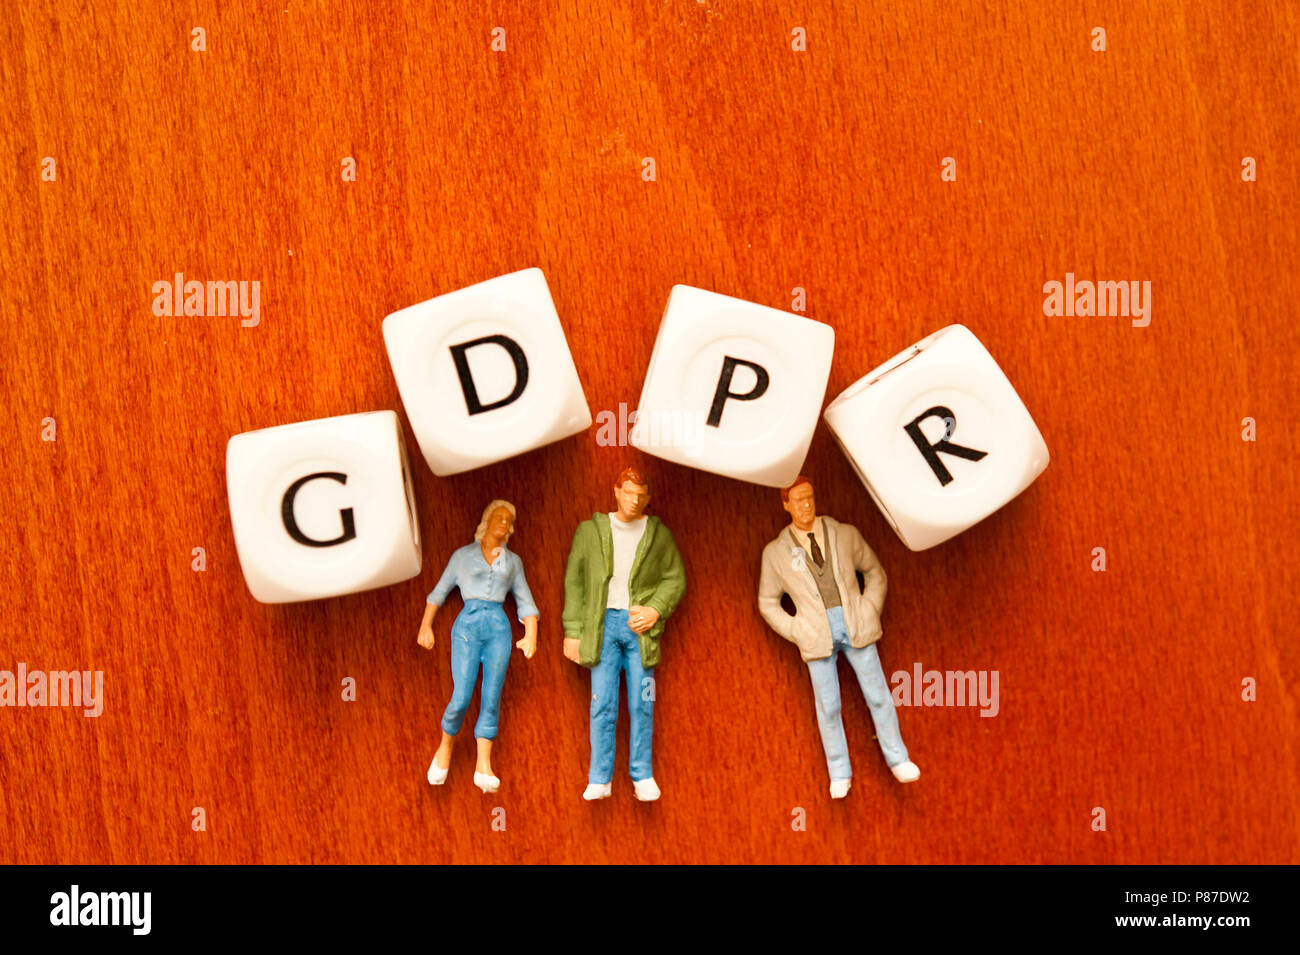 miniature figurines and dice spelling the word GDPR - General Data Protection Regulation - Stock Image